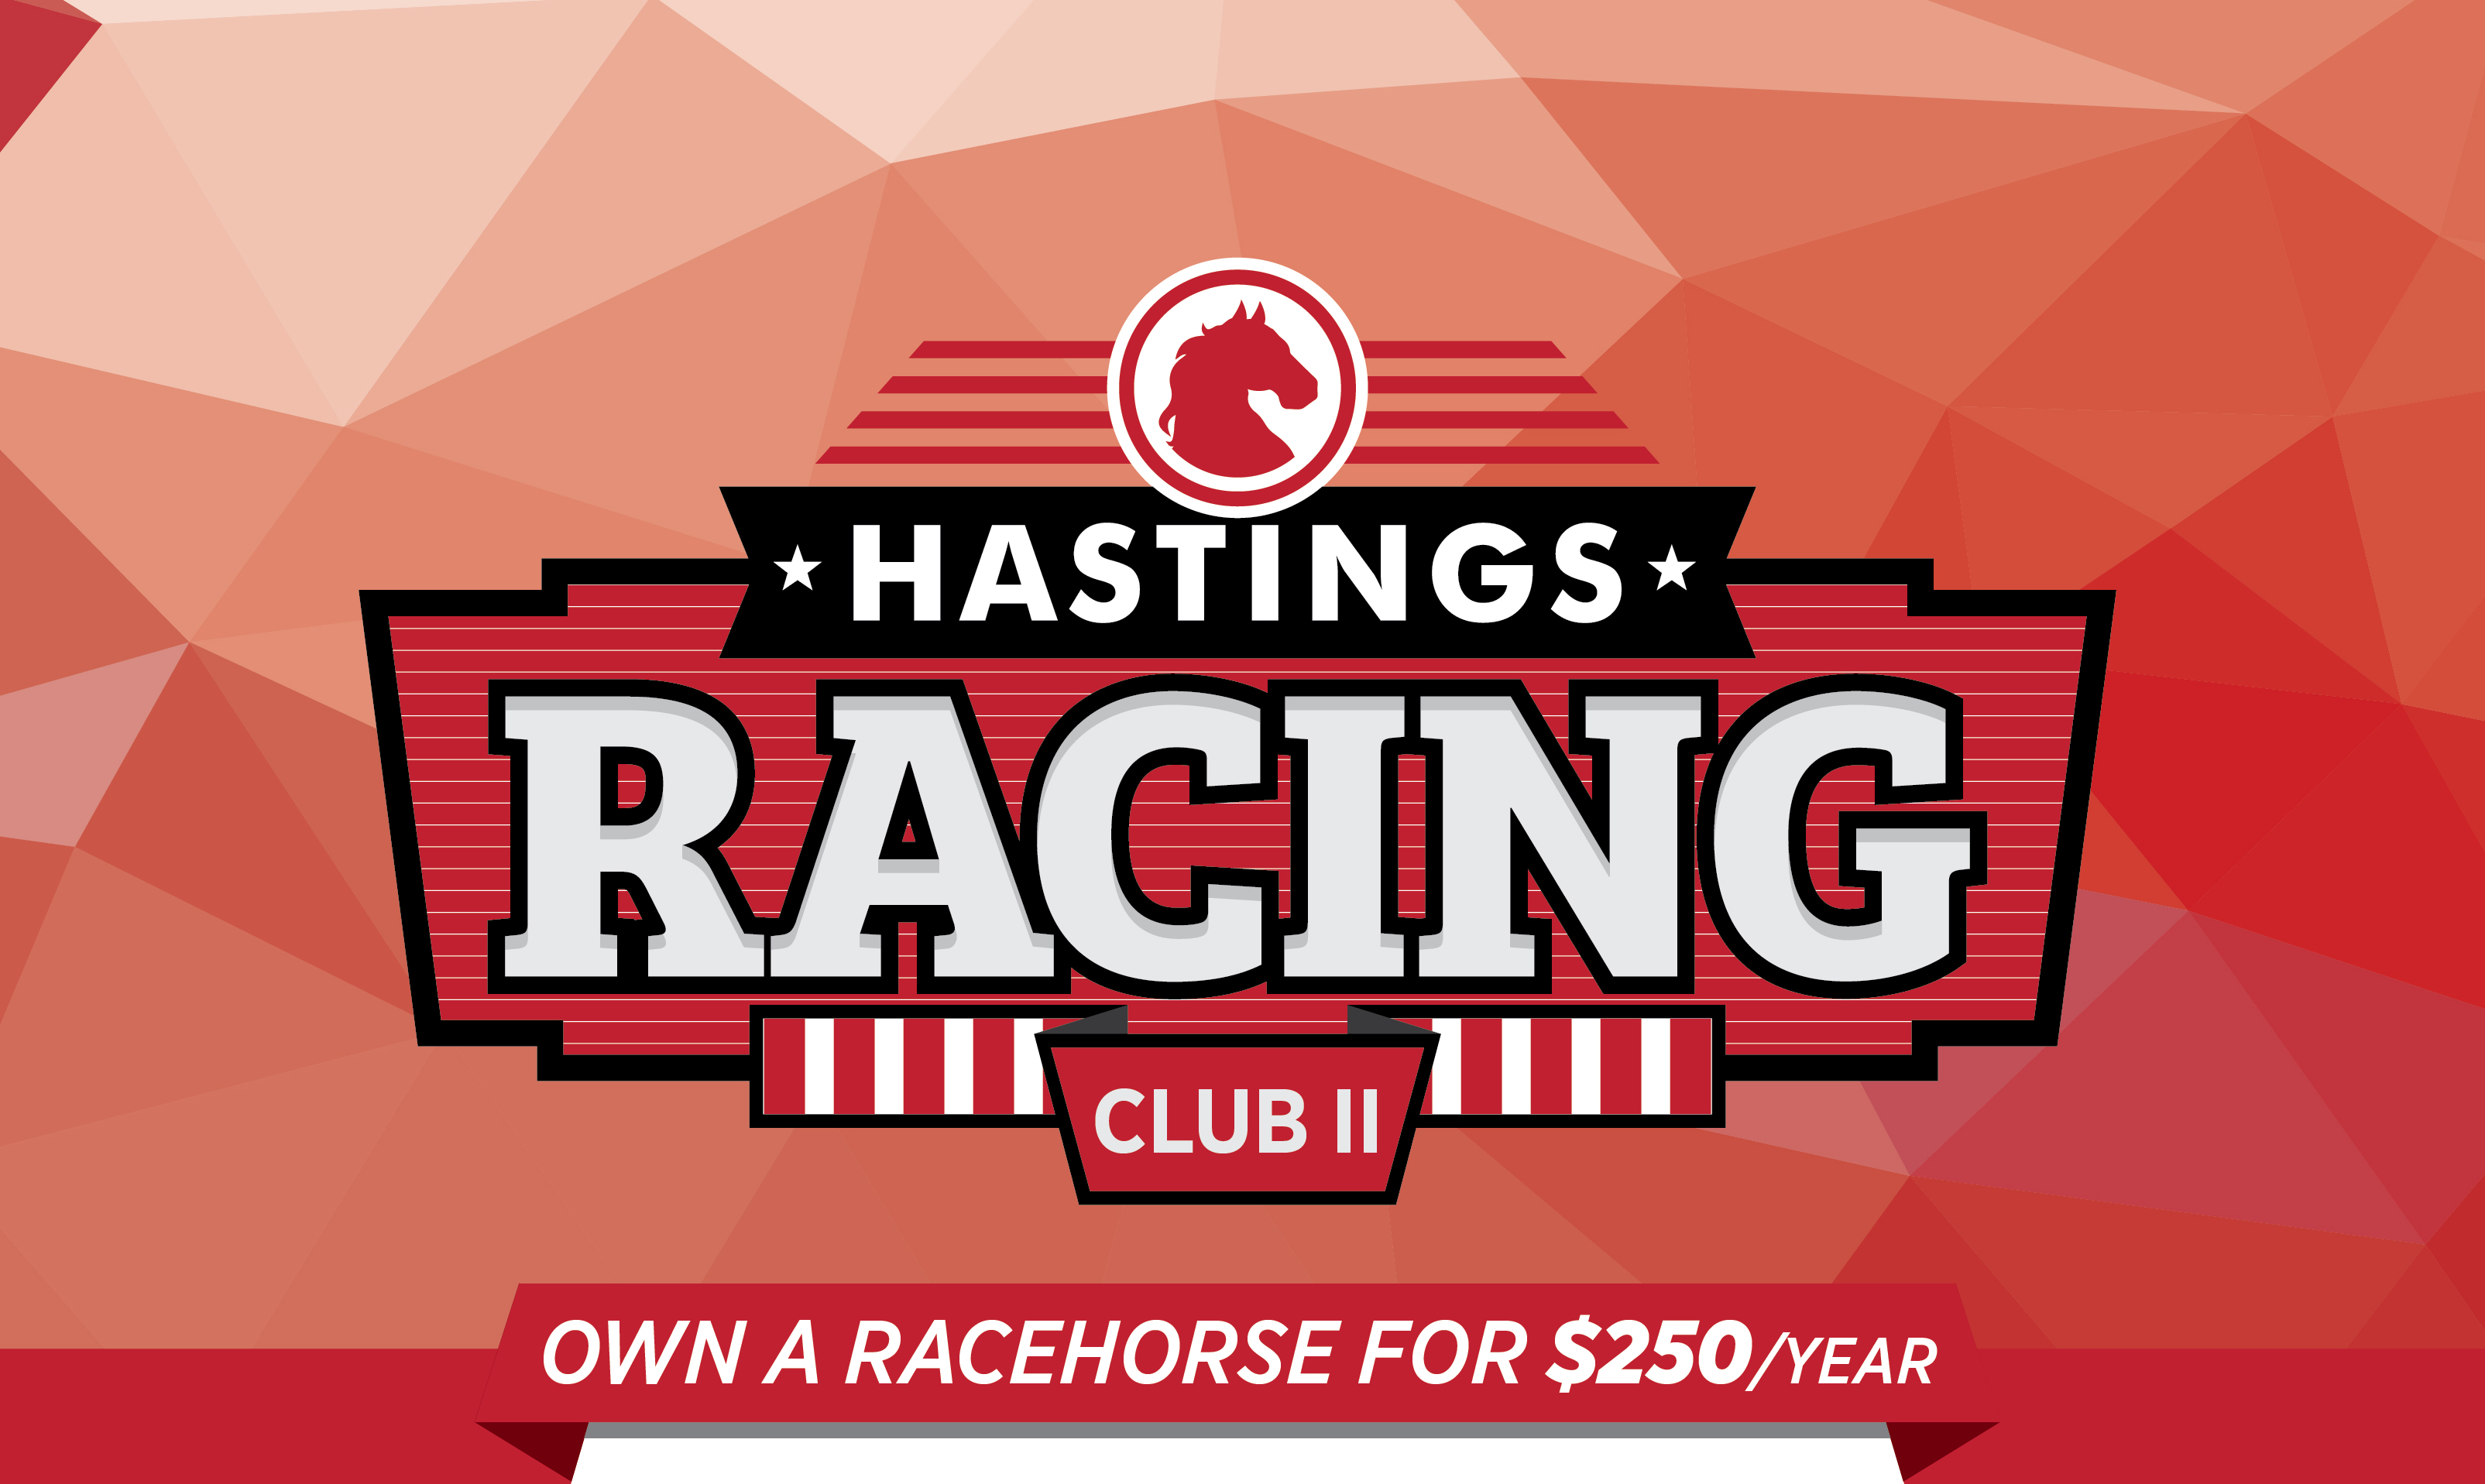 MKT15-224 Hastings Racing Club II_Promo Page Button